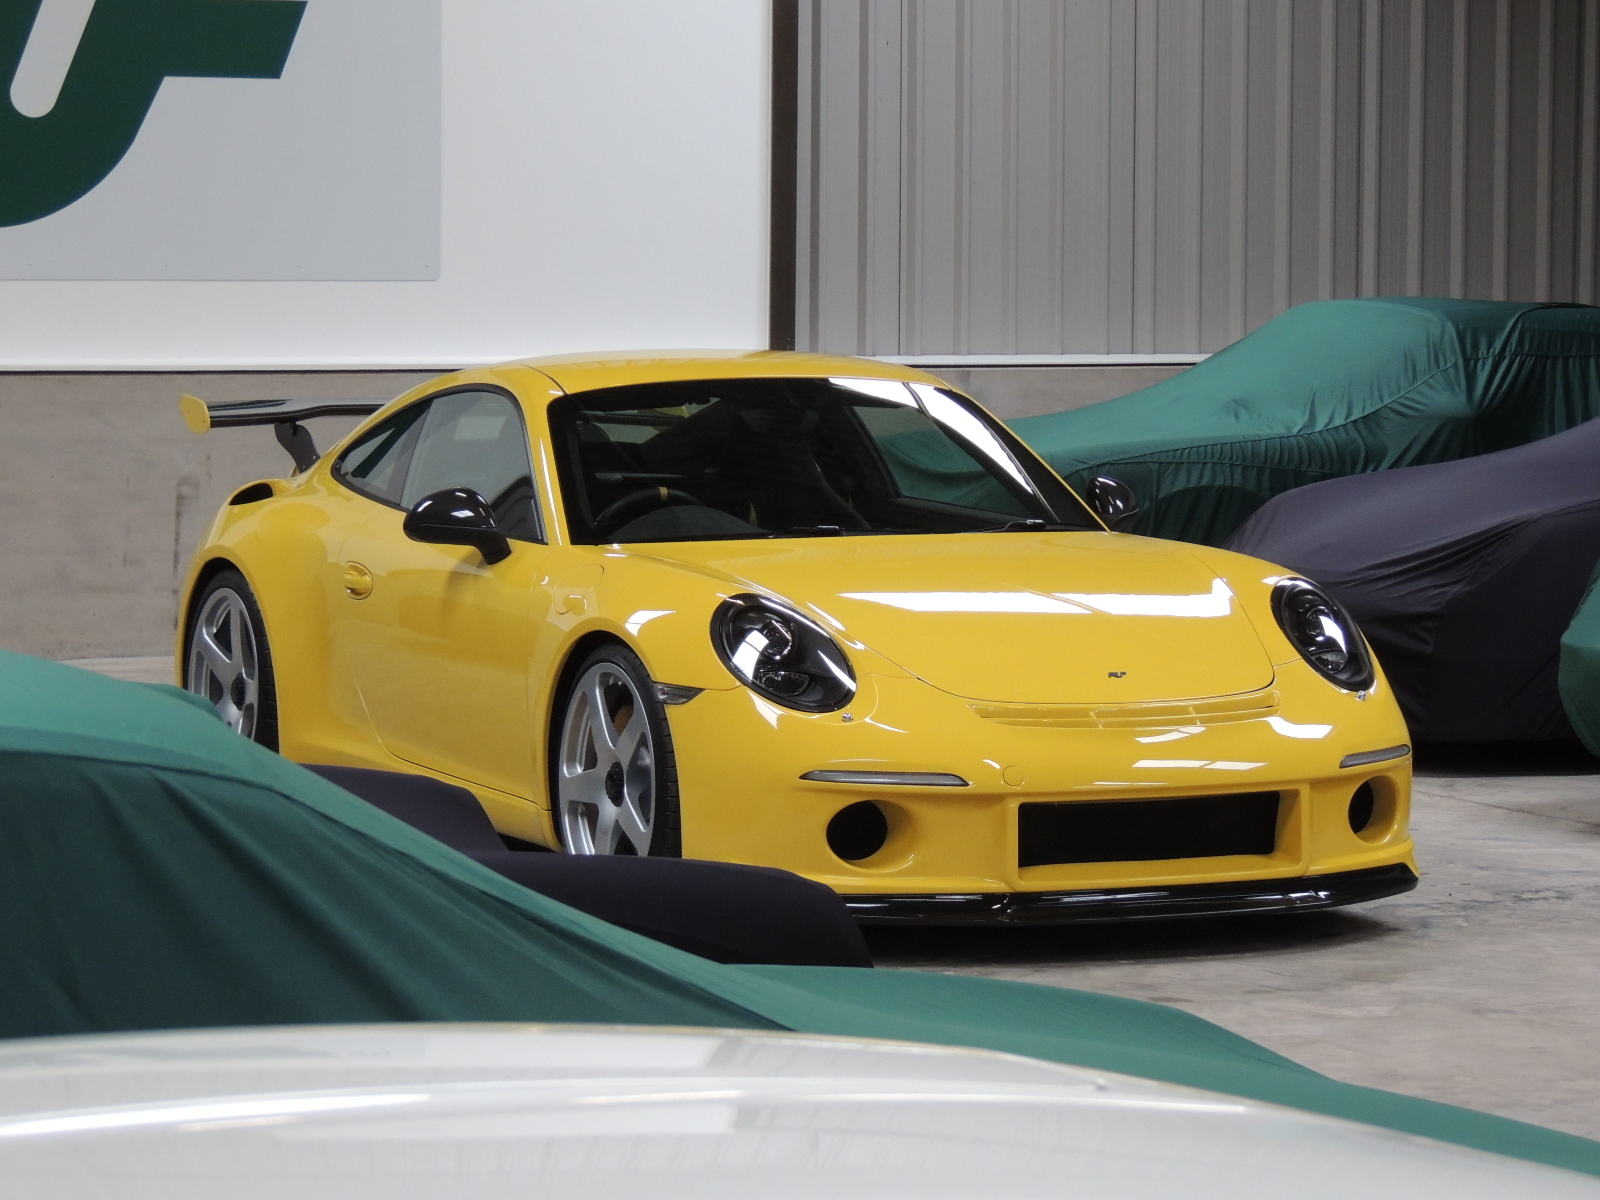 2013 RUF RtR 'Narrow Body'